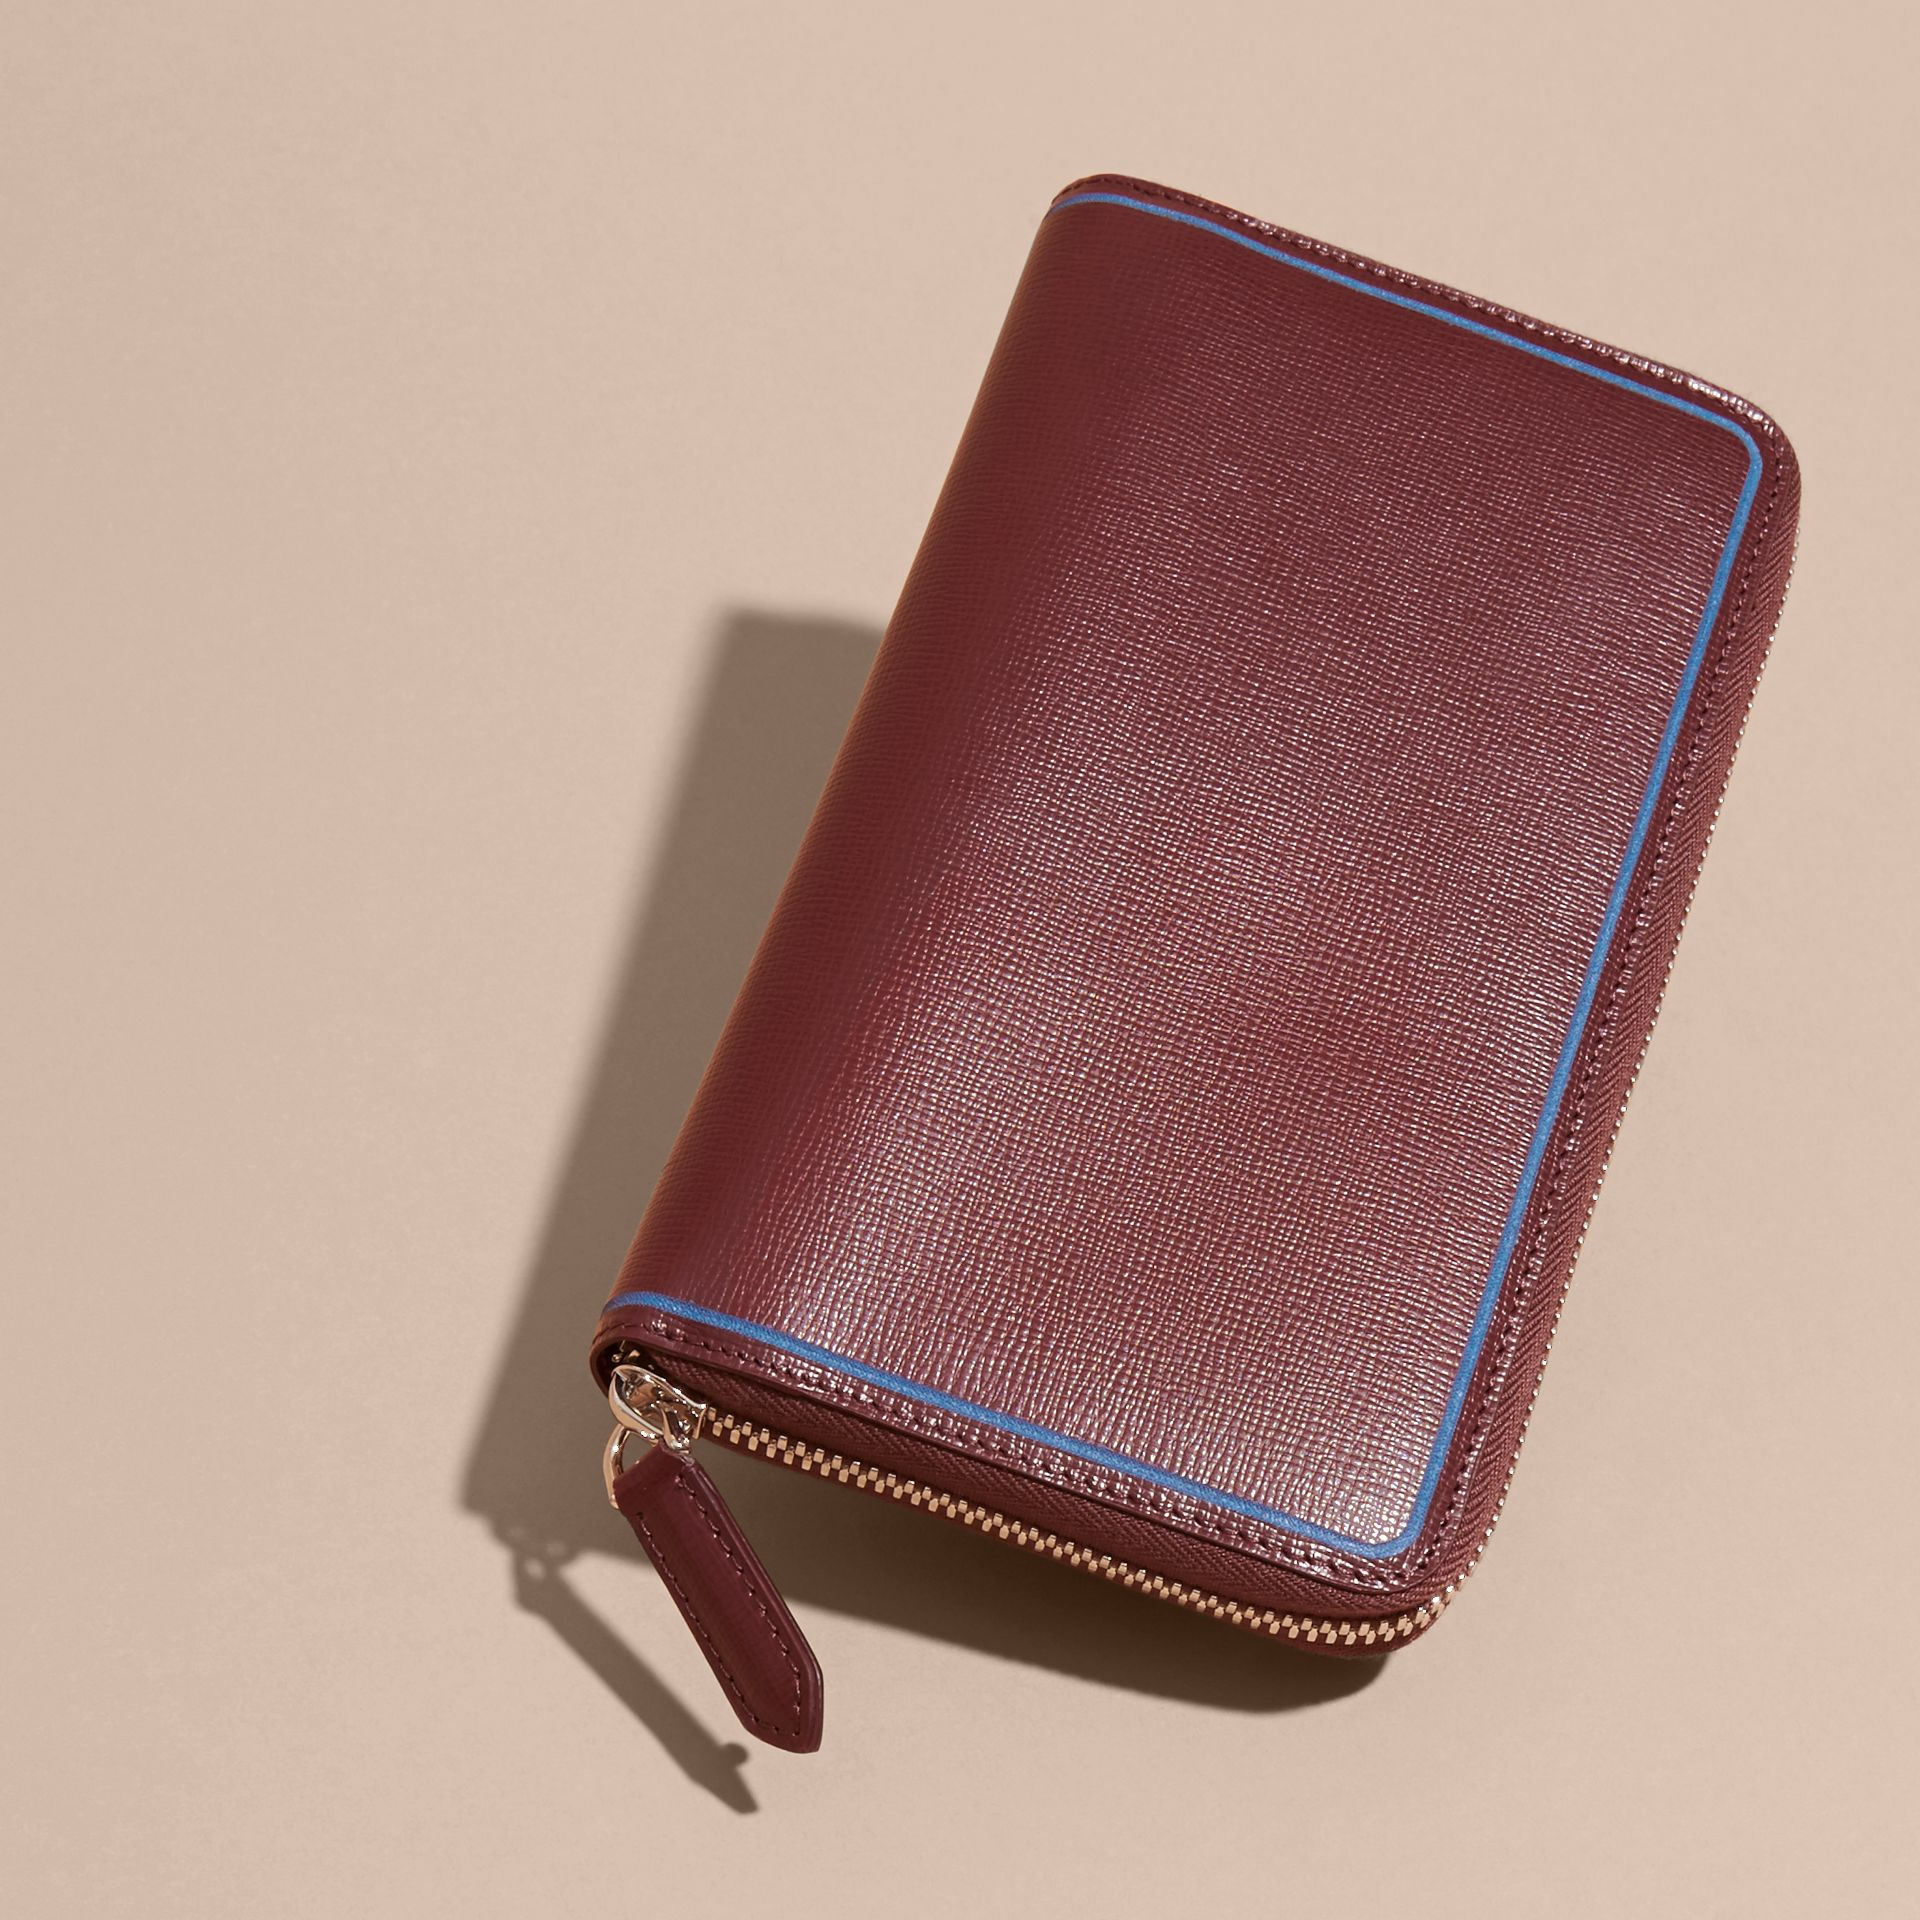 Border Detail London Leather Ziparound Wallet in Burgundy Red - gallery image 2